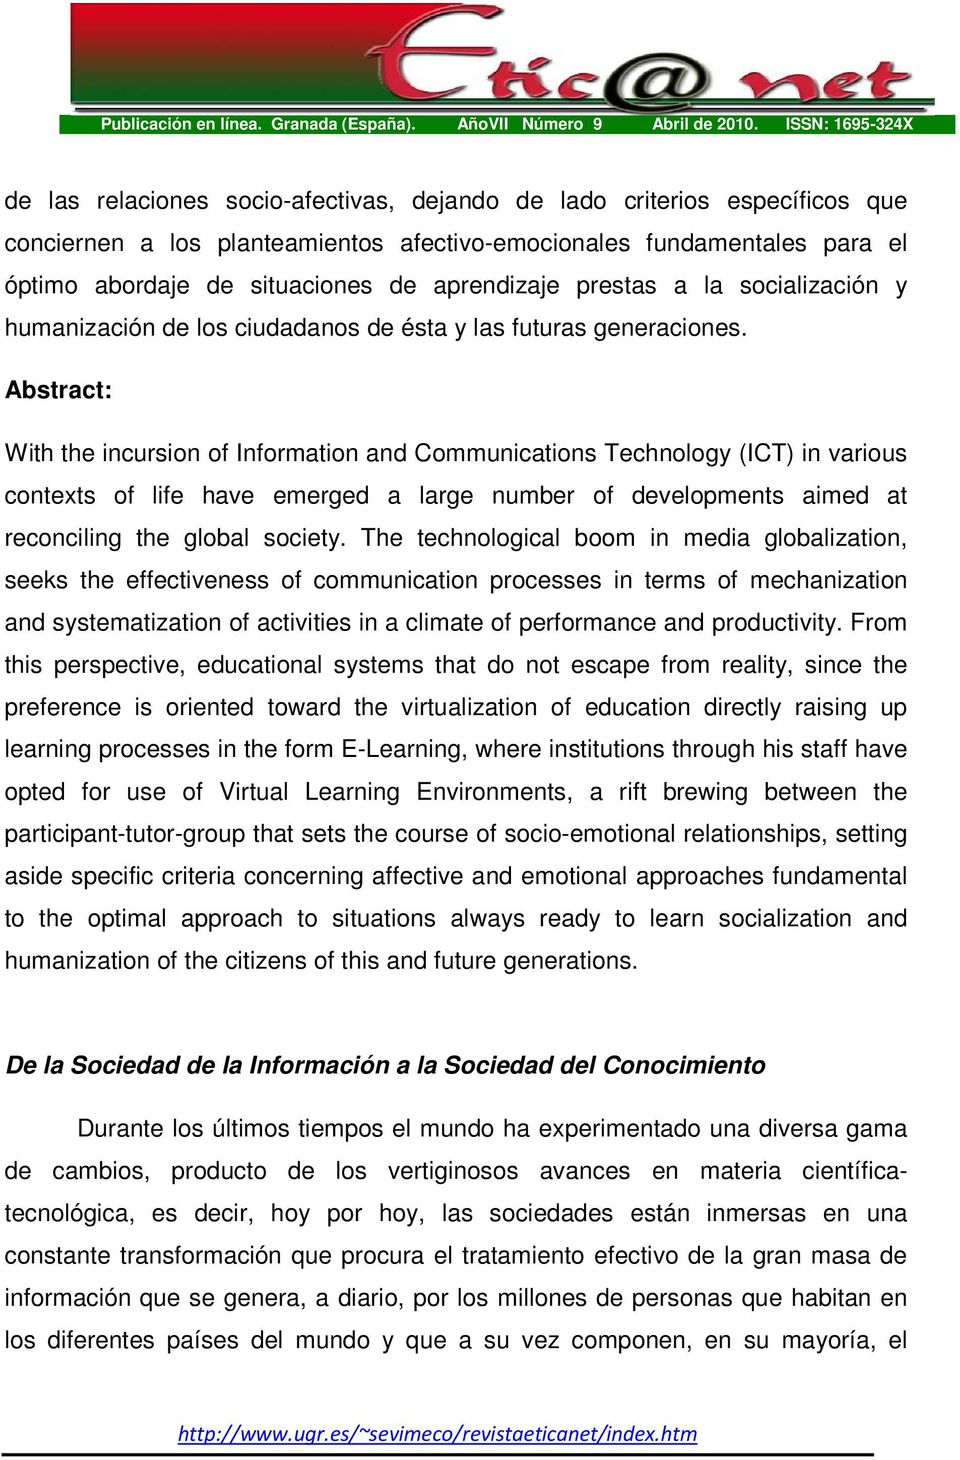 Abstract: With the incursion of Information and Communications Technology (ICT) in various contexts of life have emerged a large number of developments aimed at reconciling the global society.